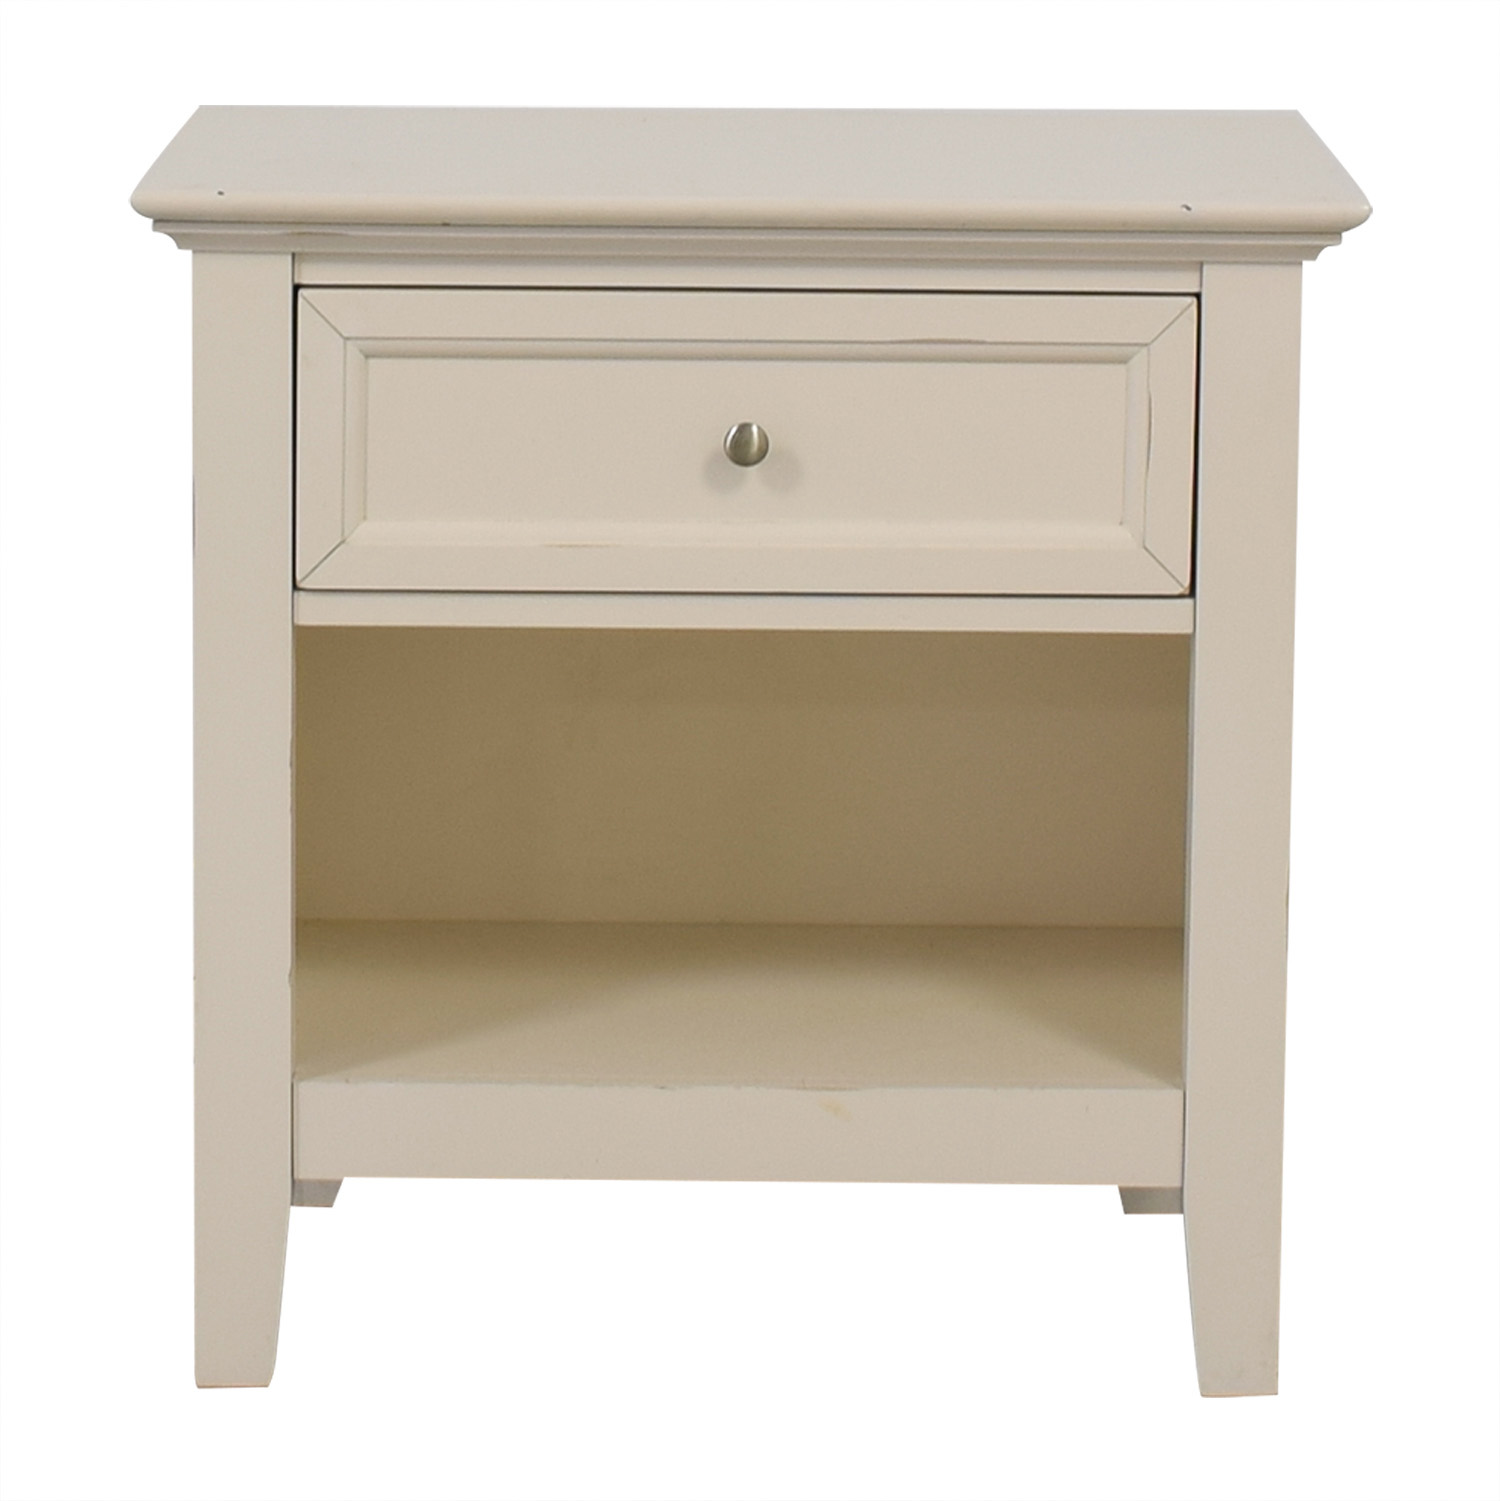 Macy's Macy's Sanibel Nightstand used